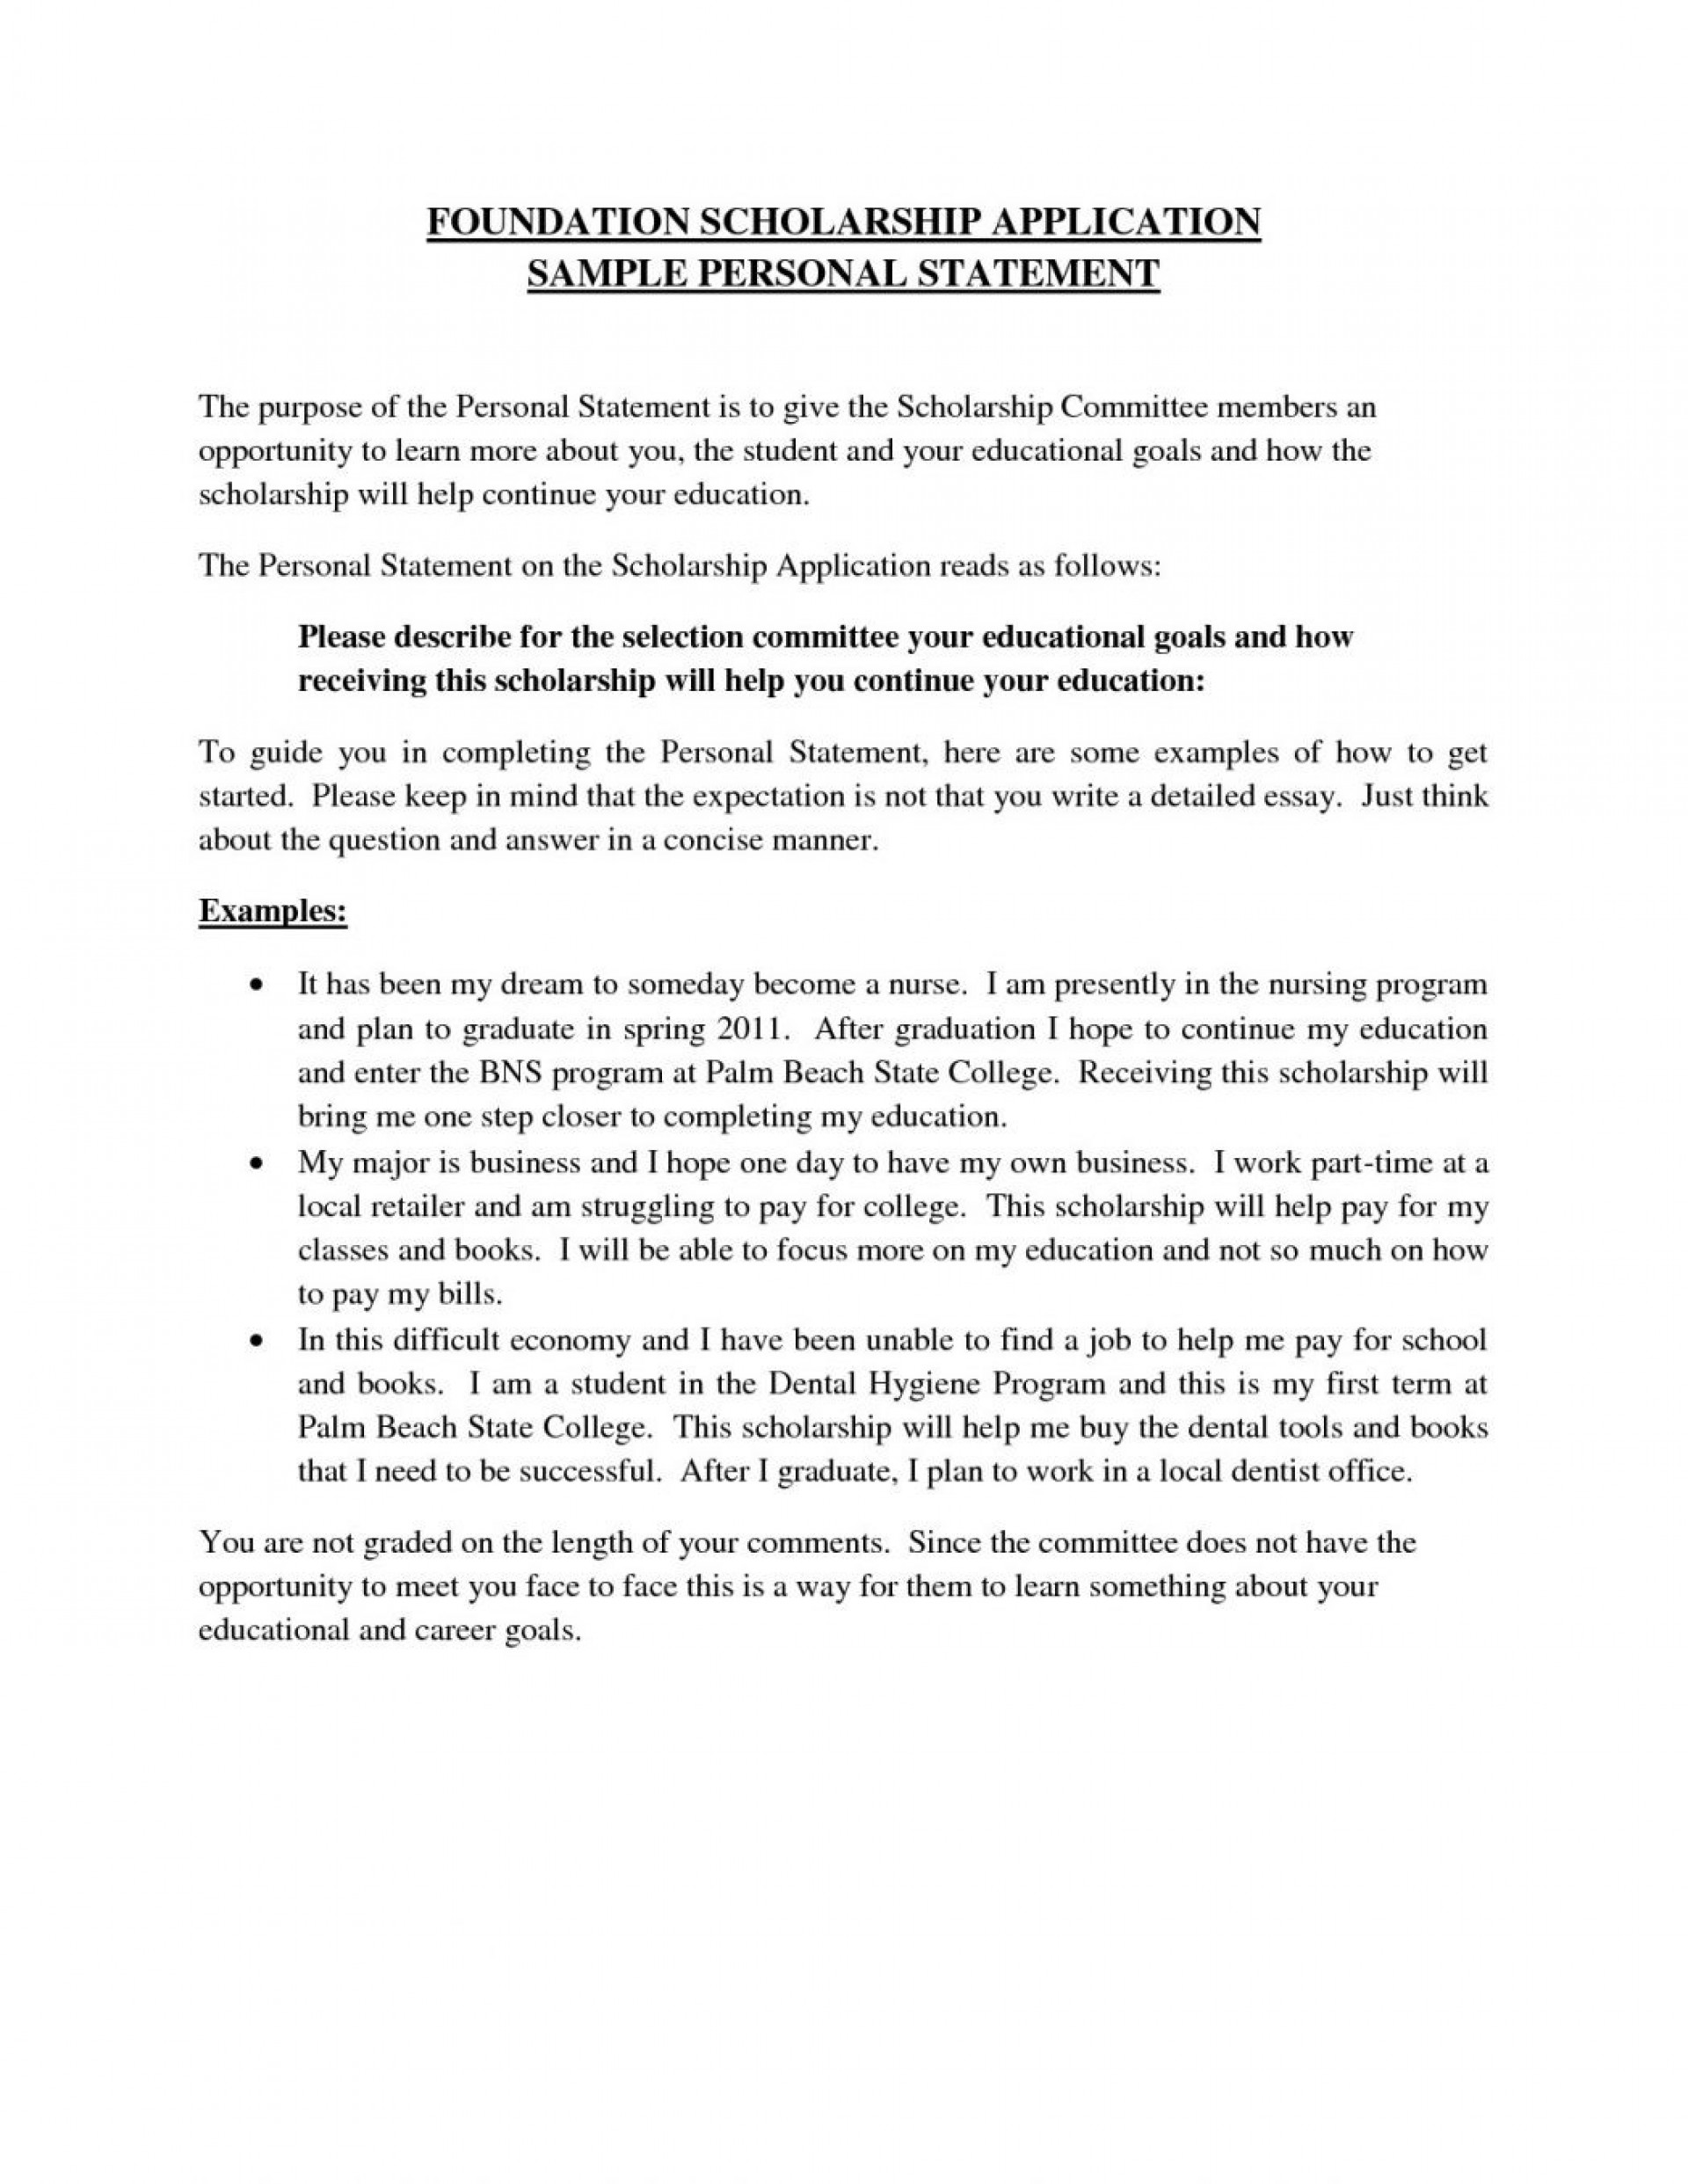 015 Scholarship Essay Examples Financial Need Example Writings And Impressive Pdf 1920